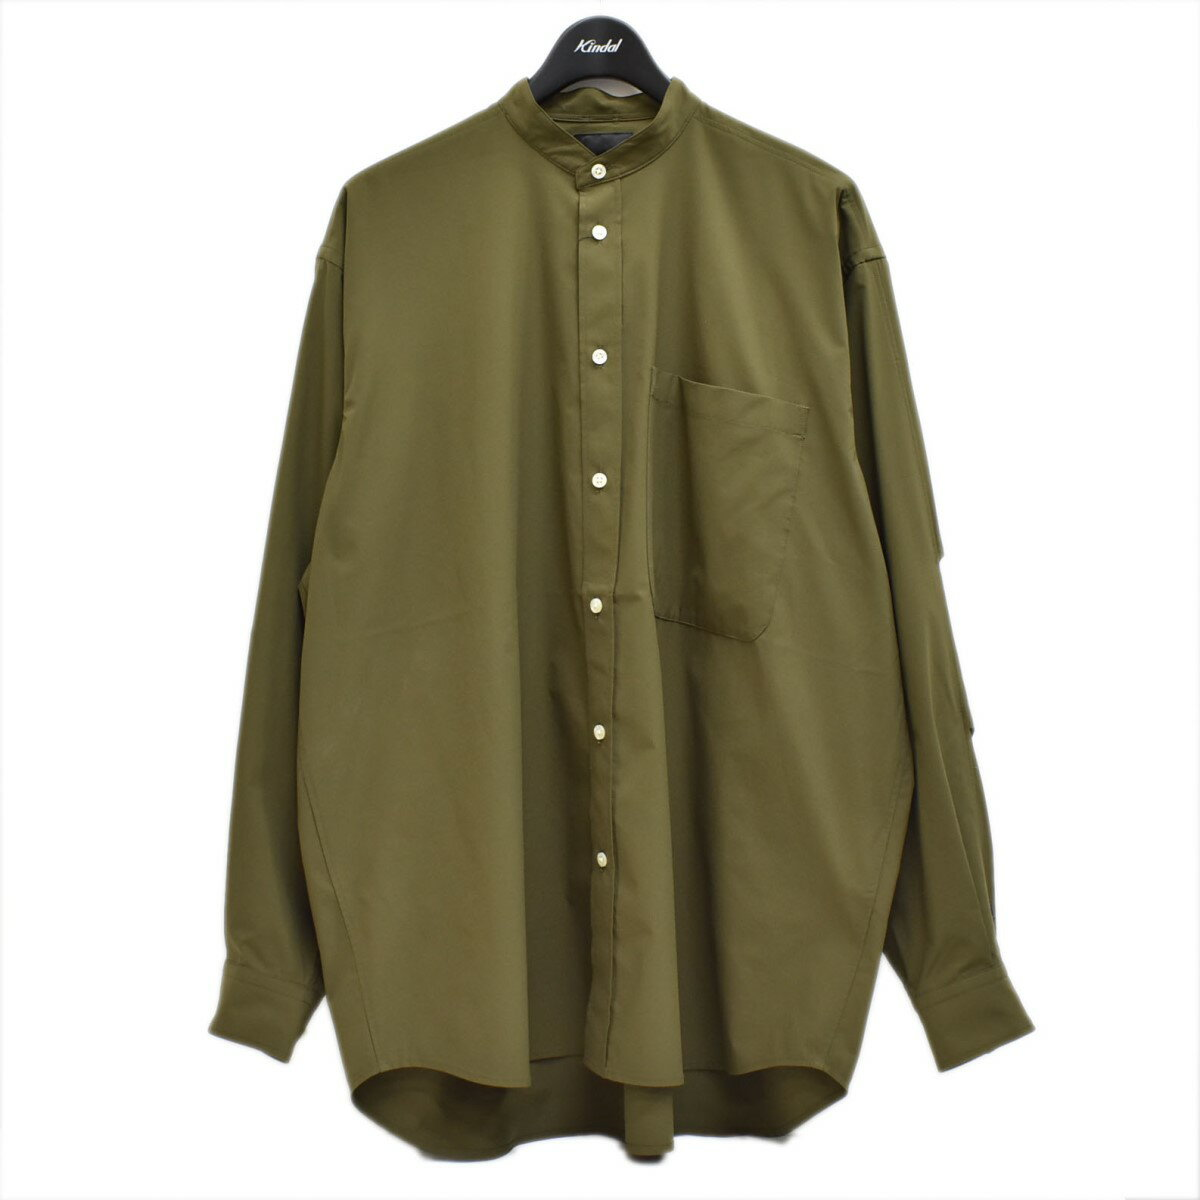 トップス, カジュアルシャツ DAIWA PIER39 20AW TECH REGULAR COLLAR SHIRTS LONG SLEEVE M 140421